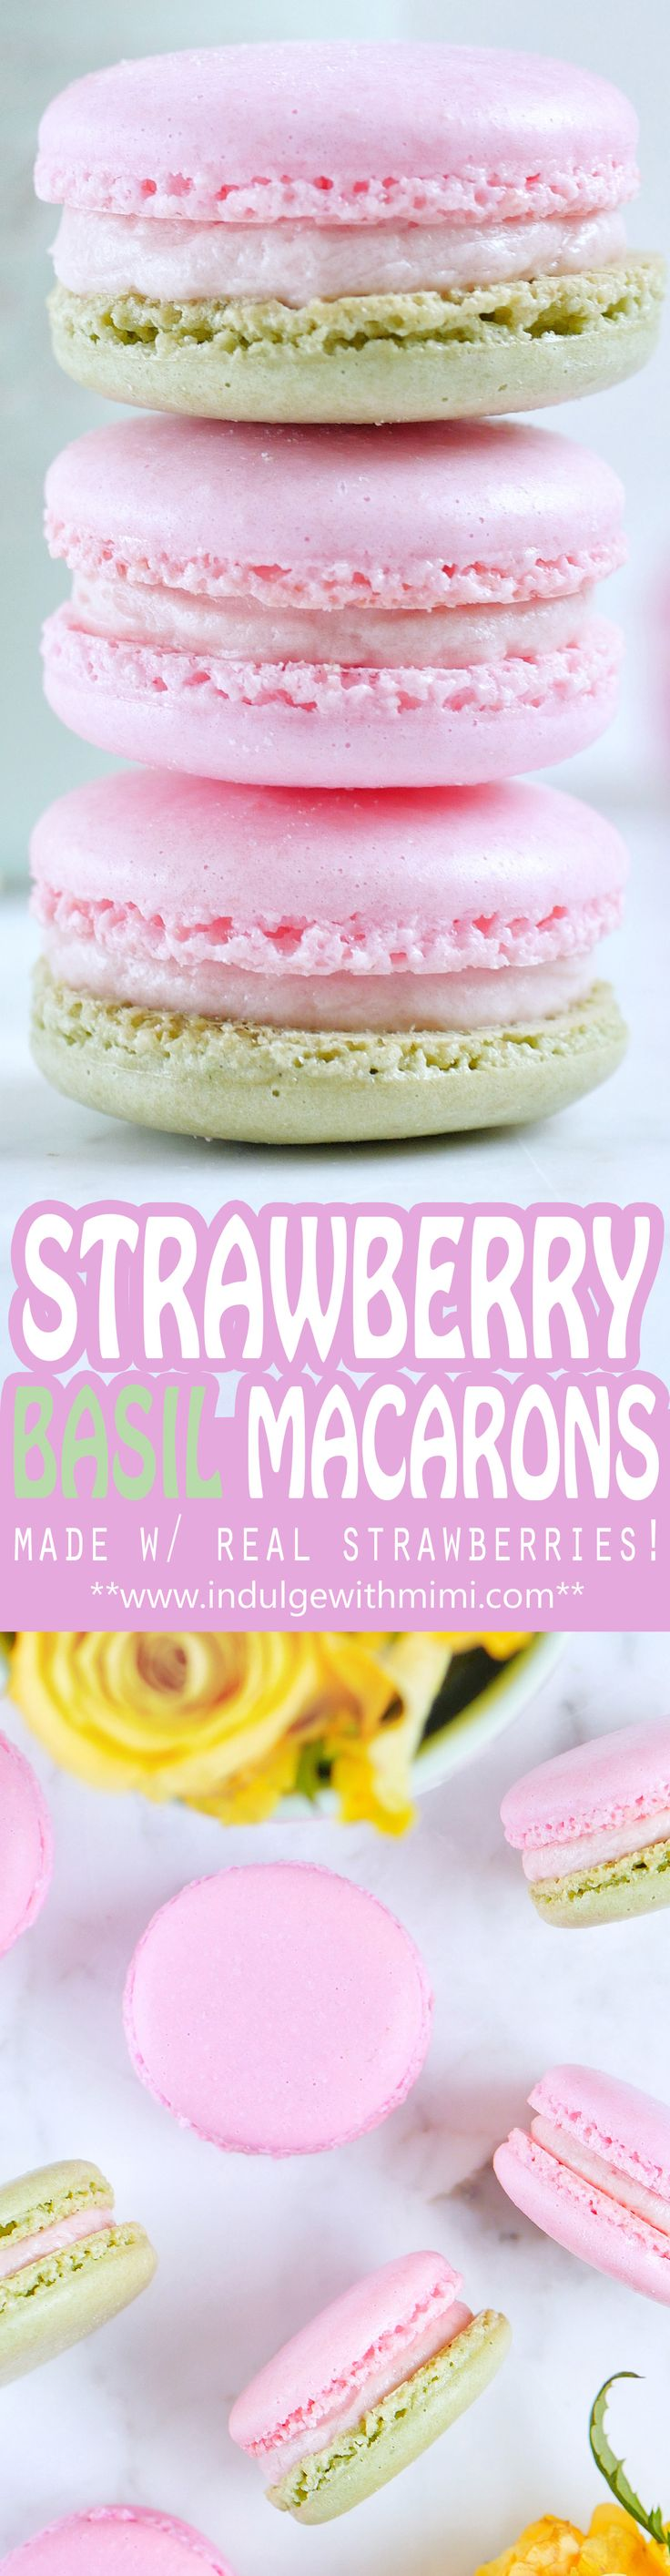 Strawberry Basil Macaron Recipe by adding REAL strawberries to a Swiss Buttercream while keeping it sturdy and not too moist for use as a macaron filling. Includes strawberry macaron template & video.